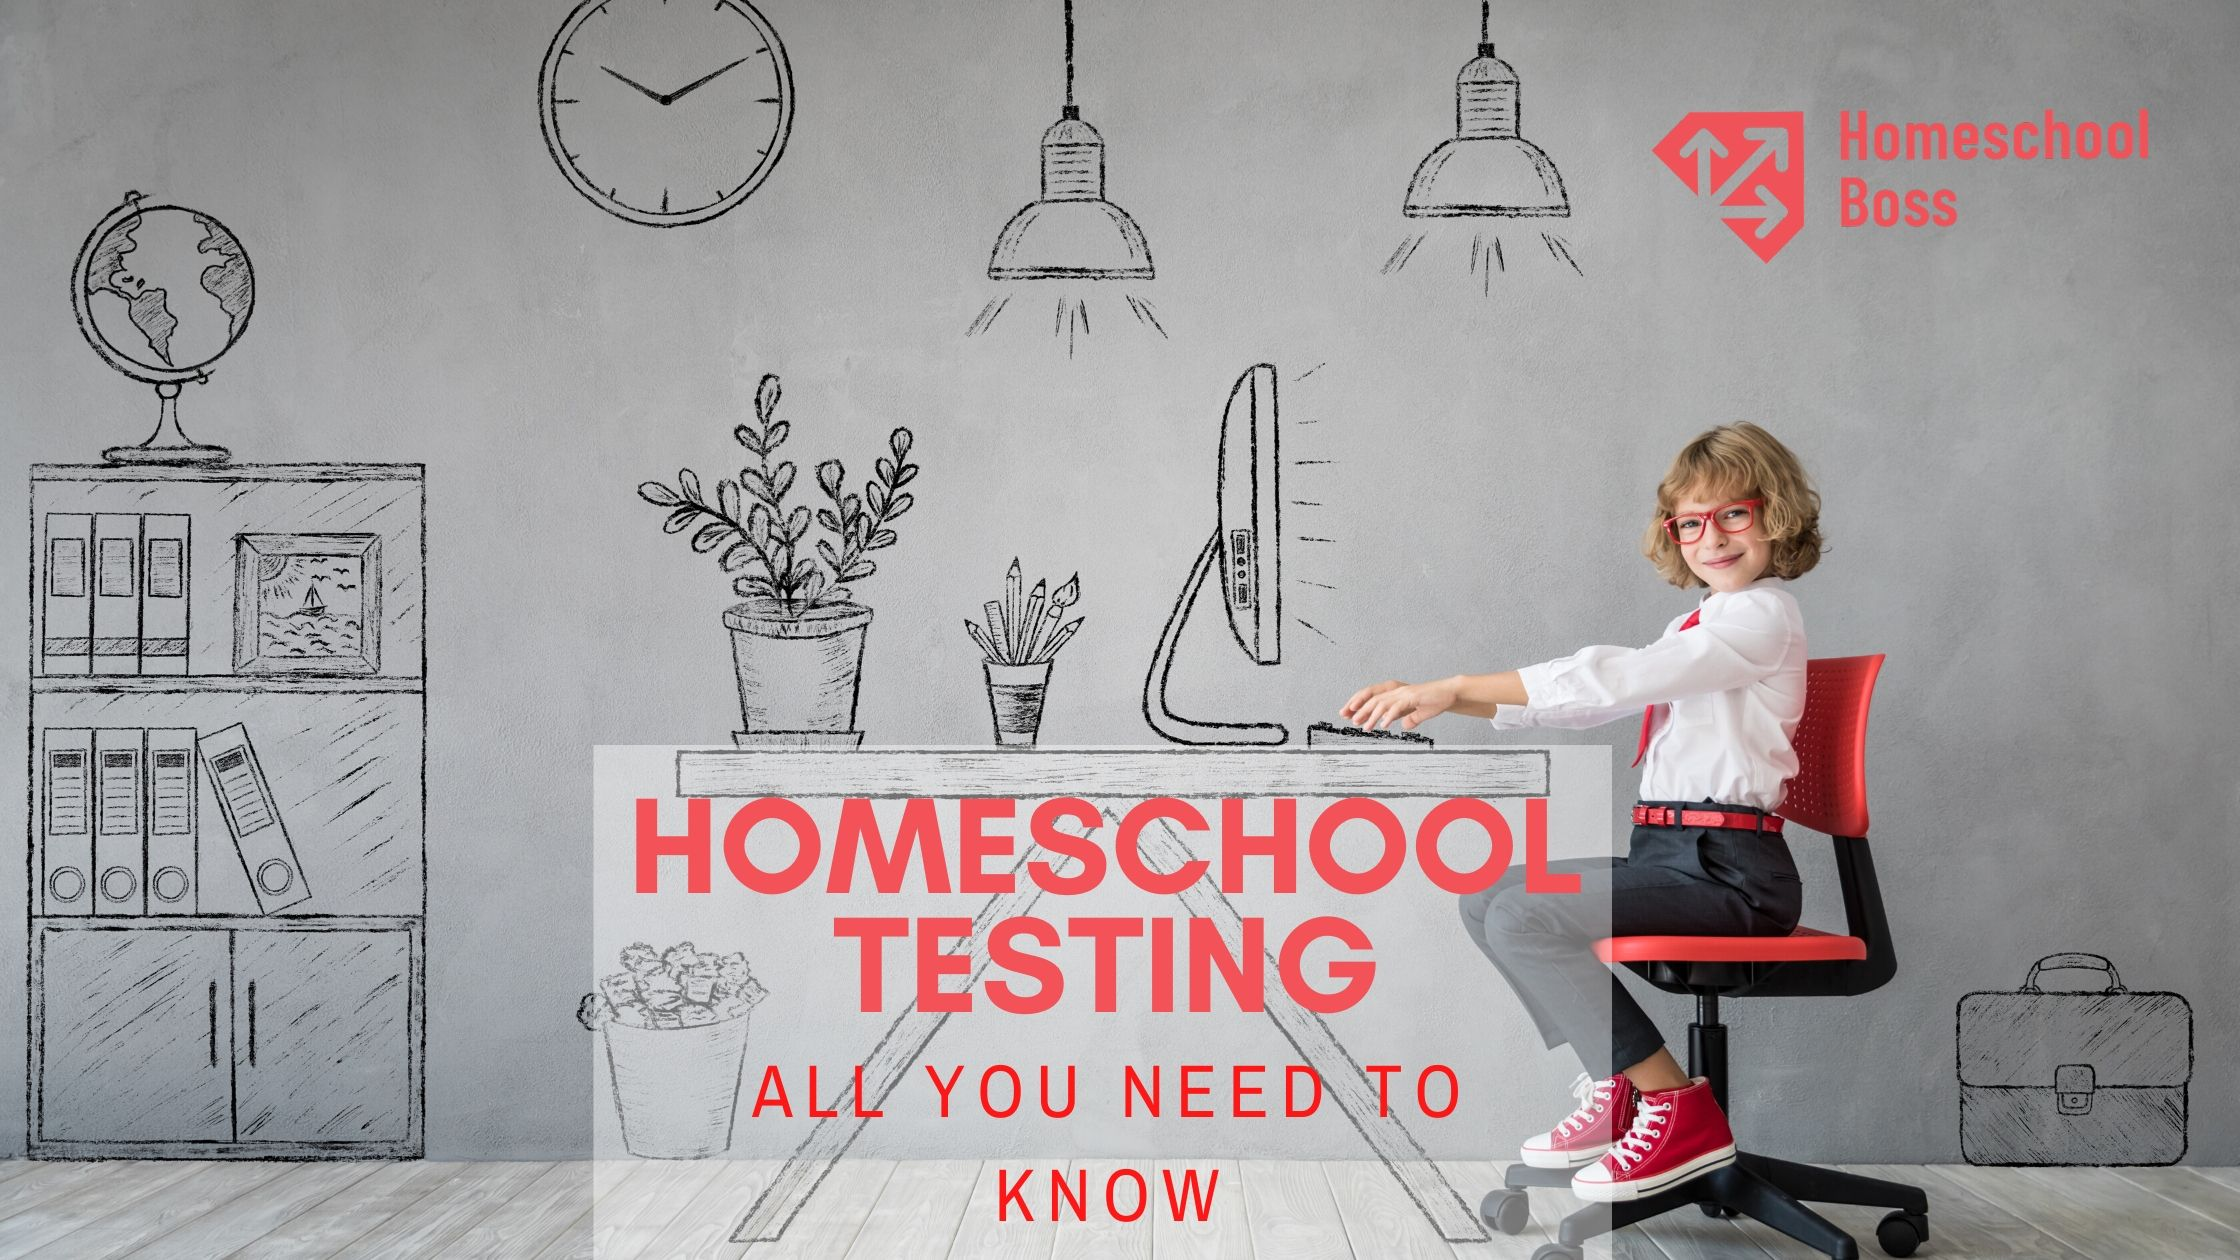 Homeschool Testing: All you need to know